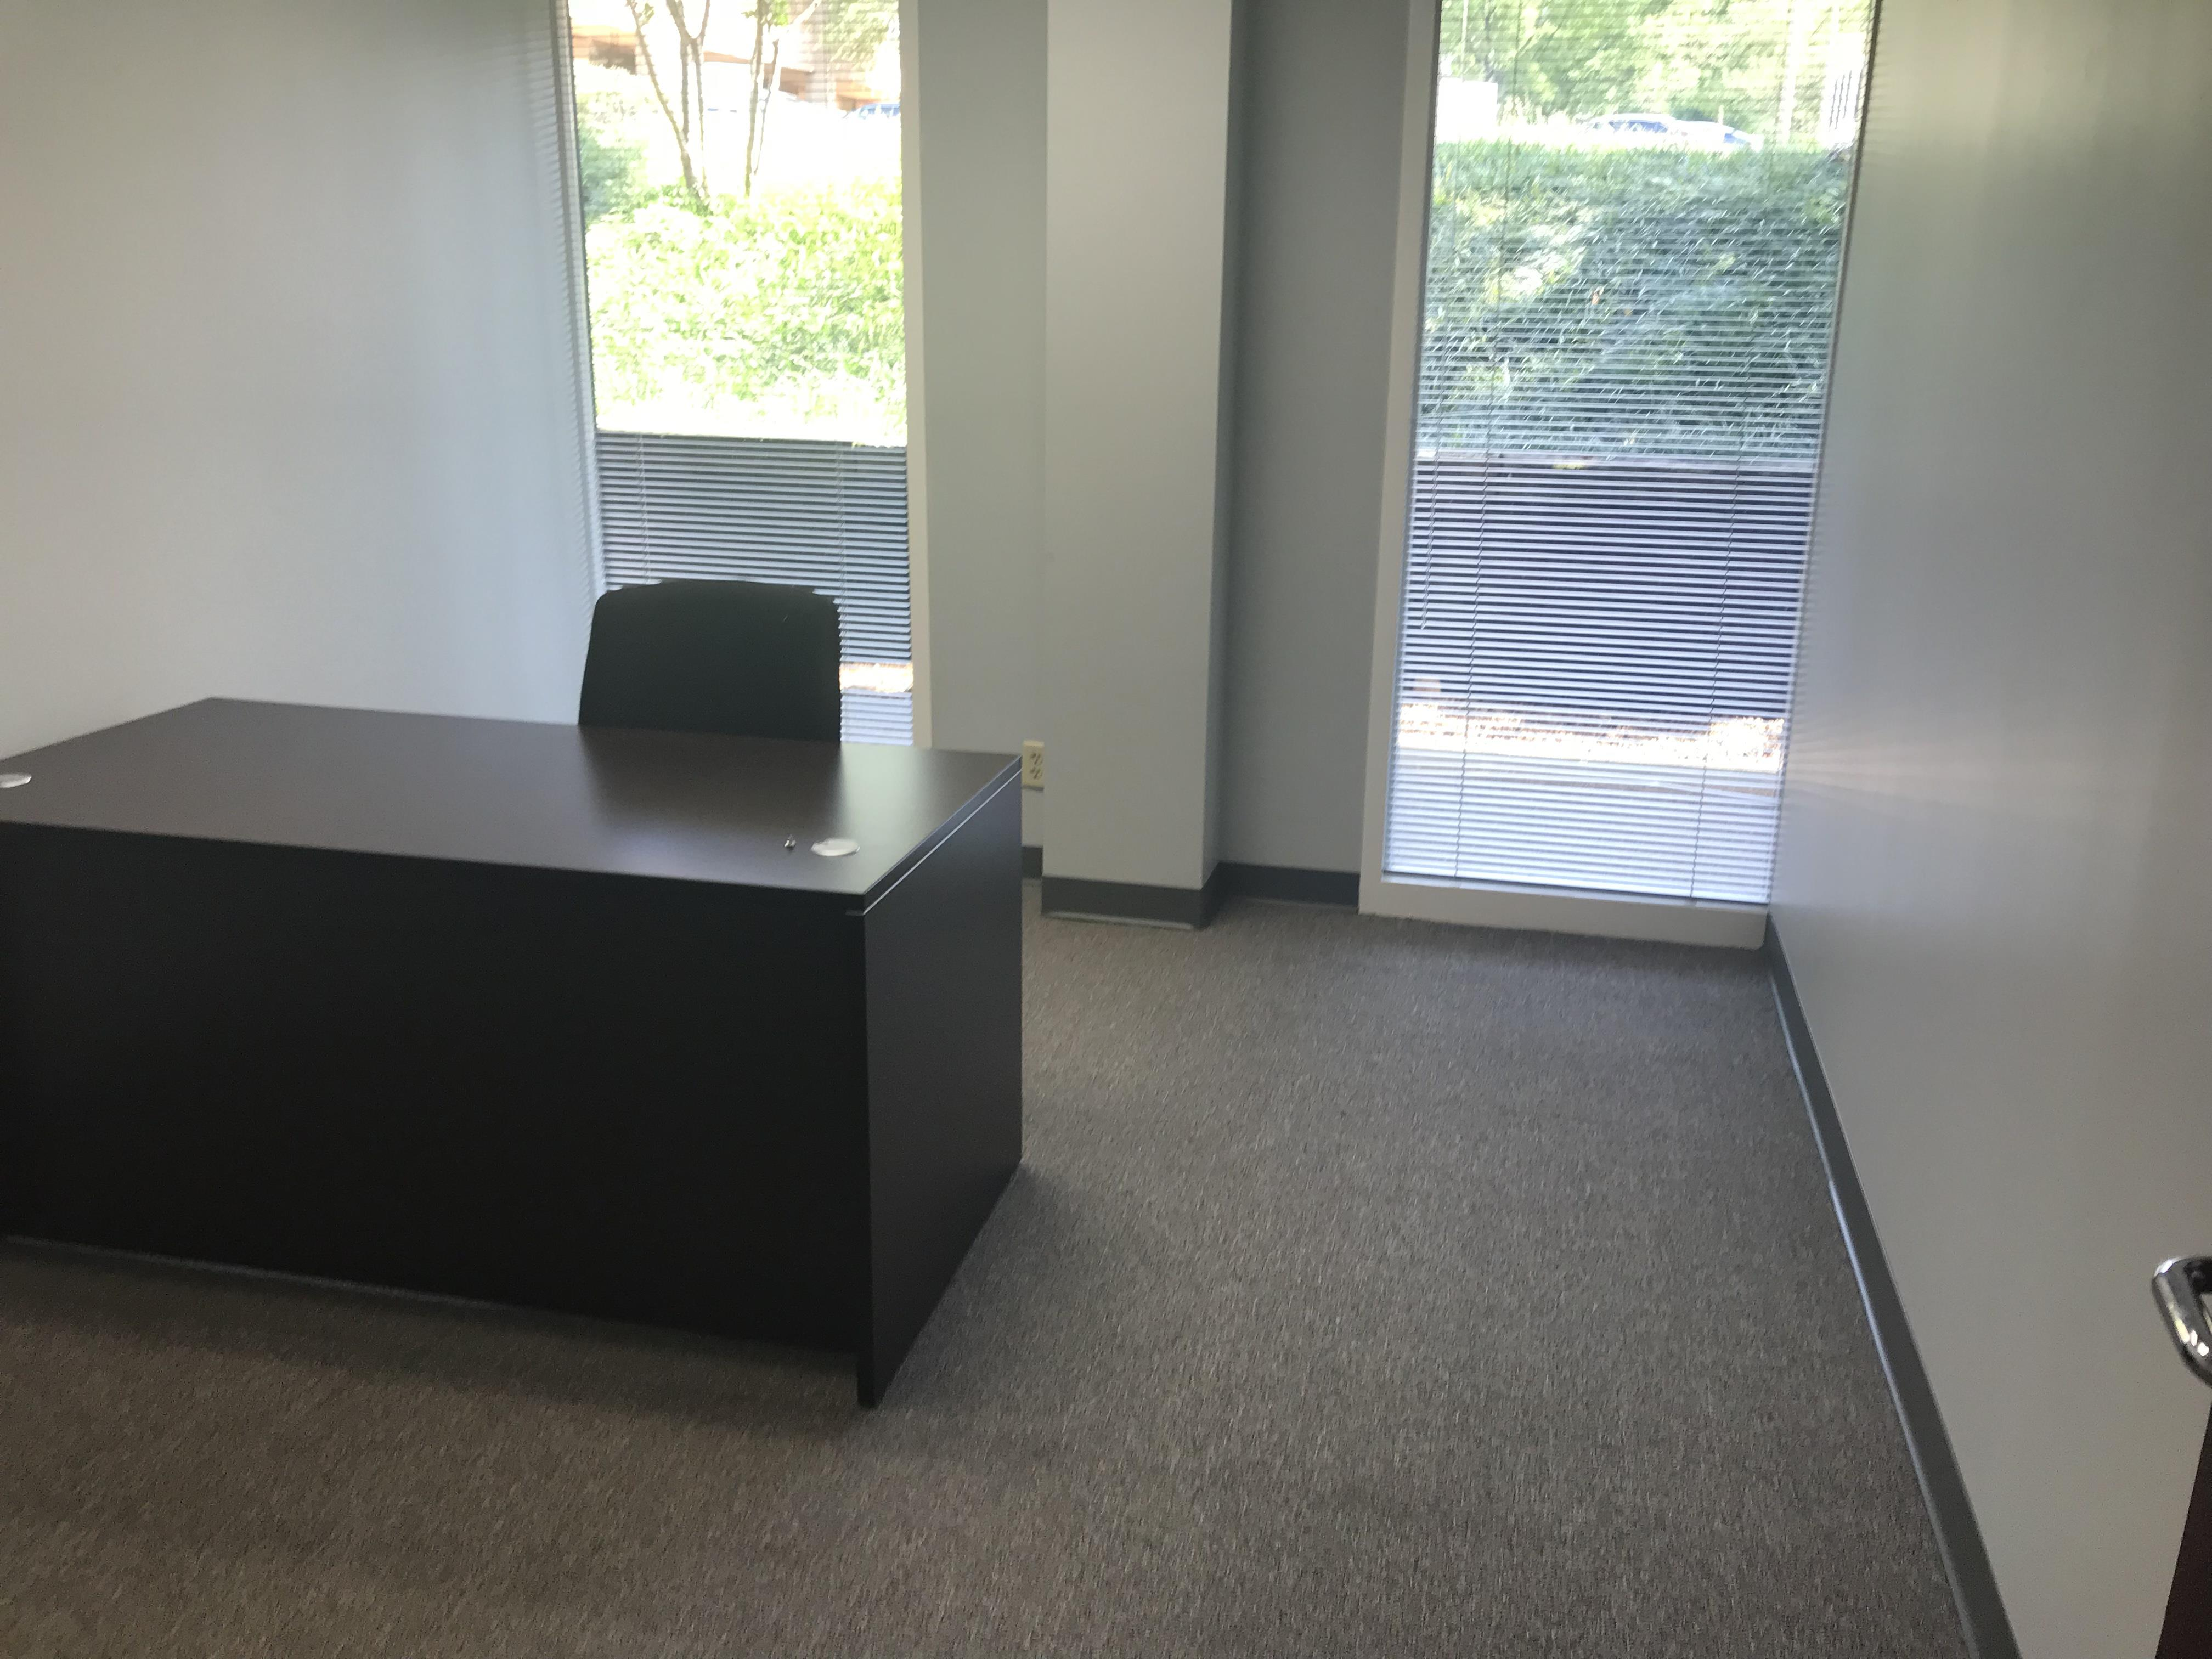 Shared Office Space In Nashville. NACO   Office Suite 1